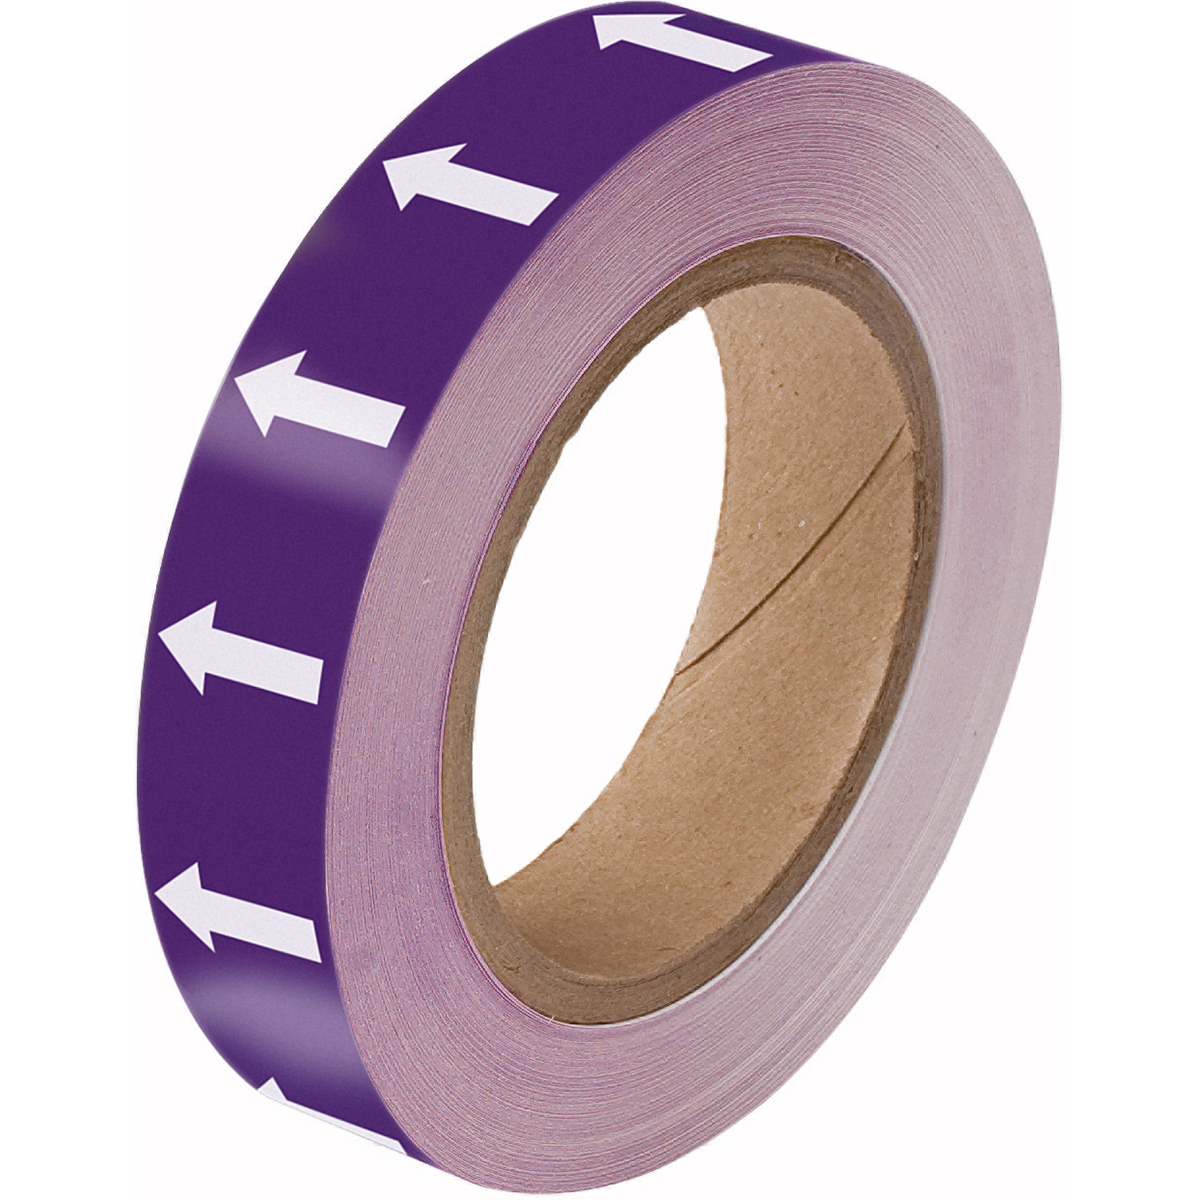 White on Purple Directional Flow Arrow Tape